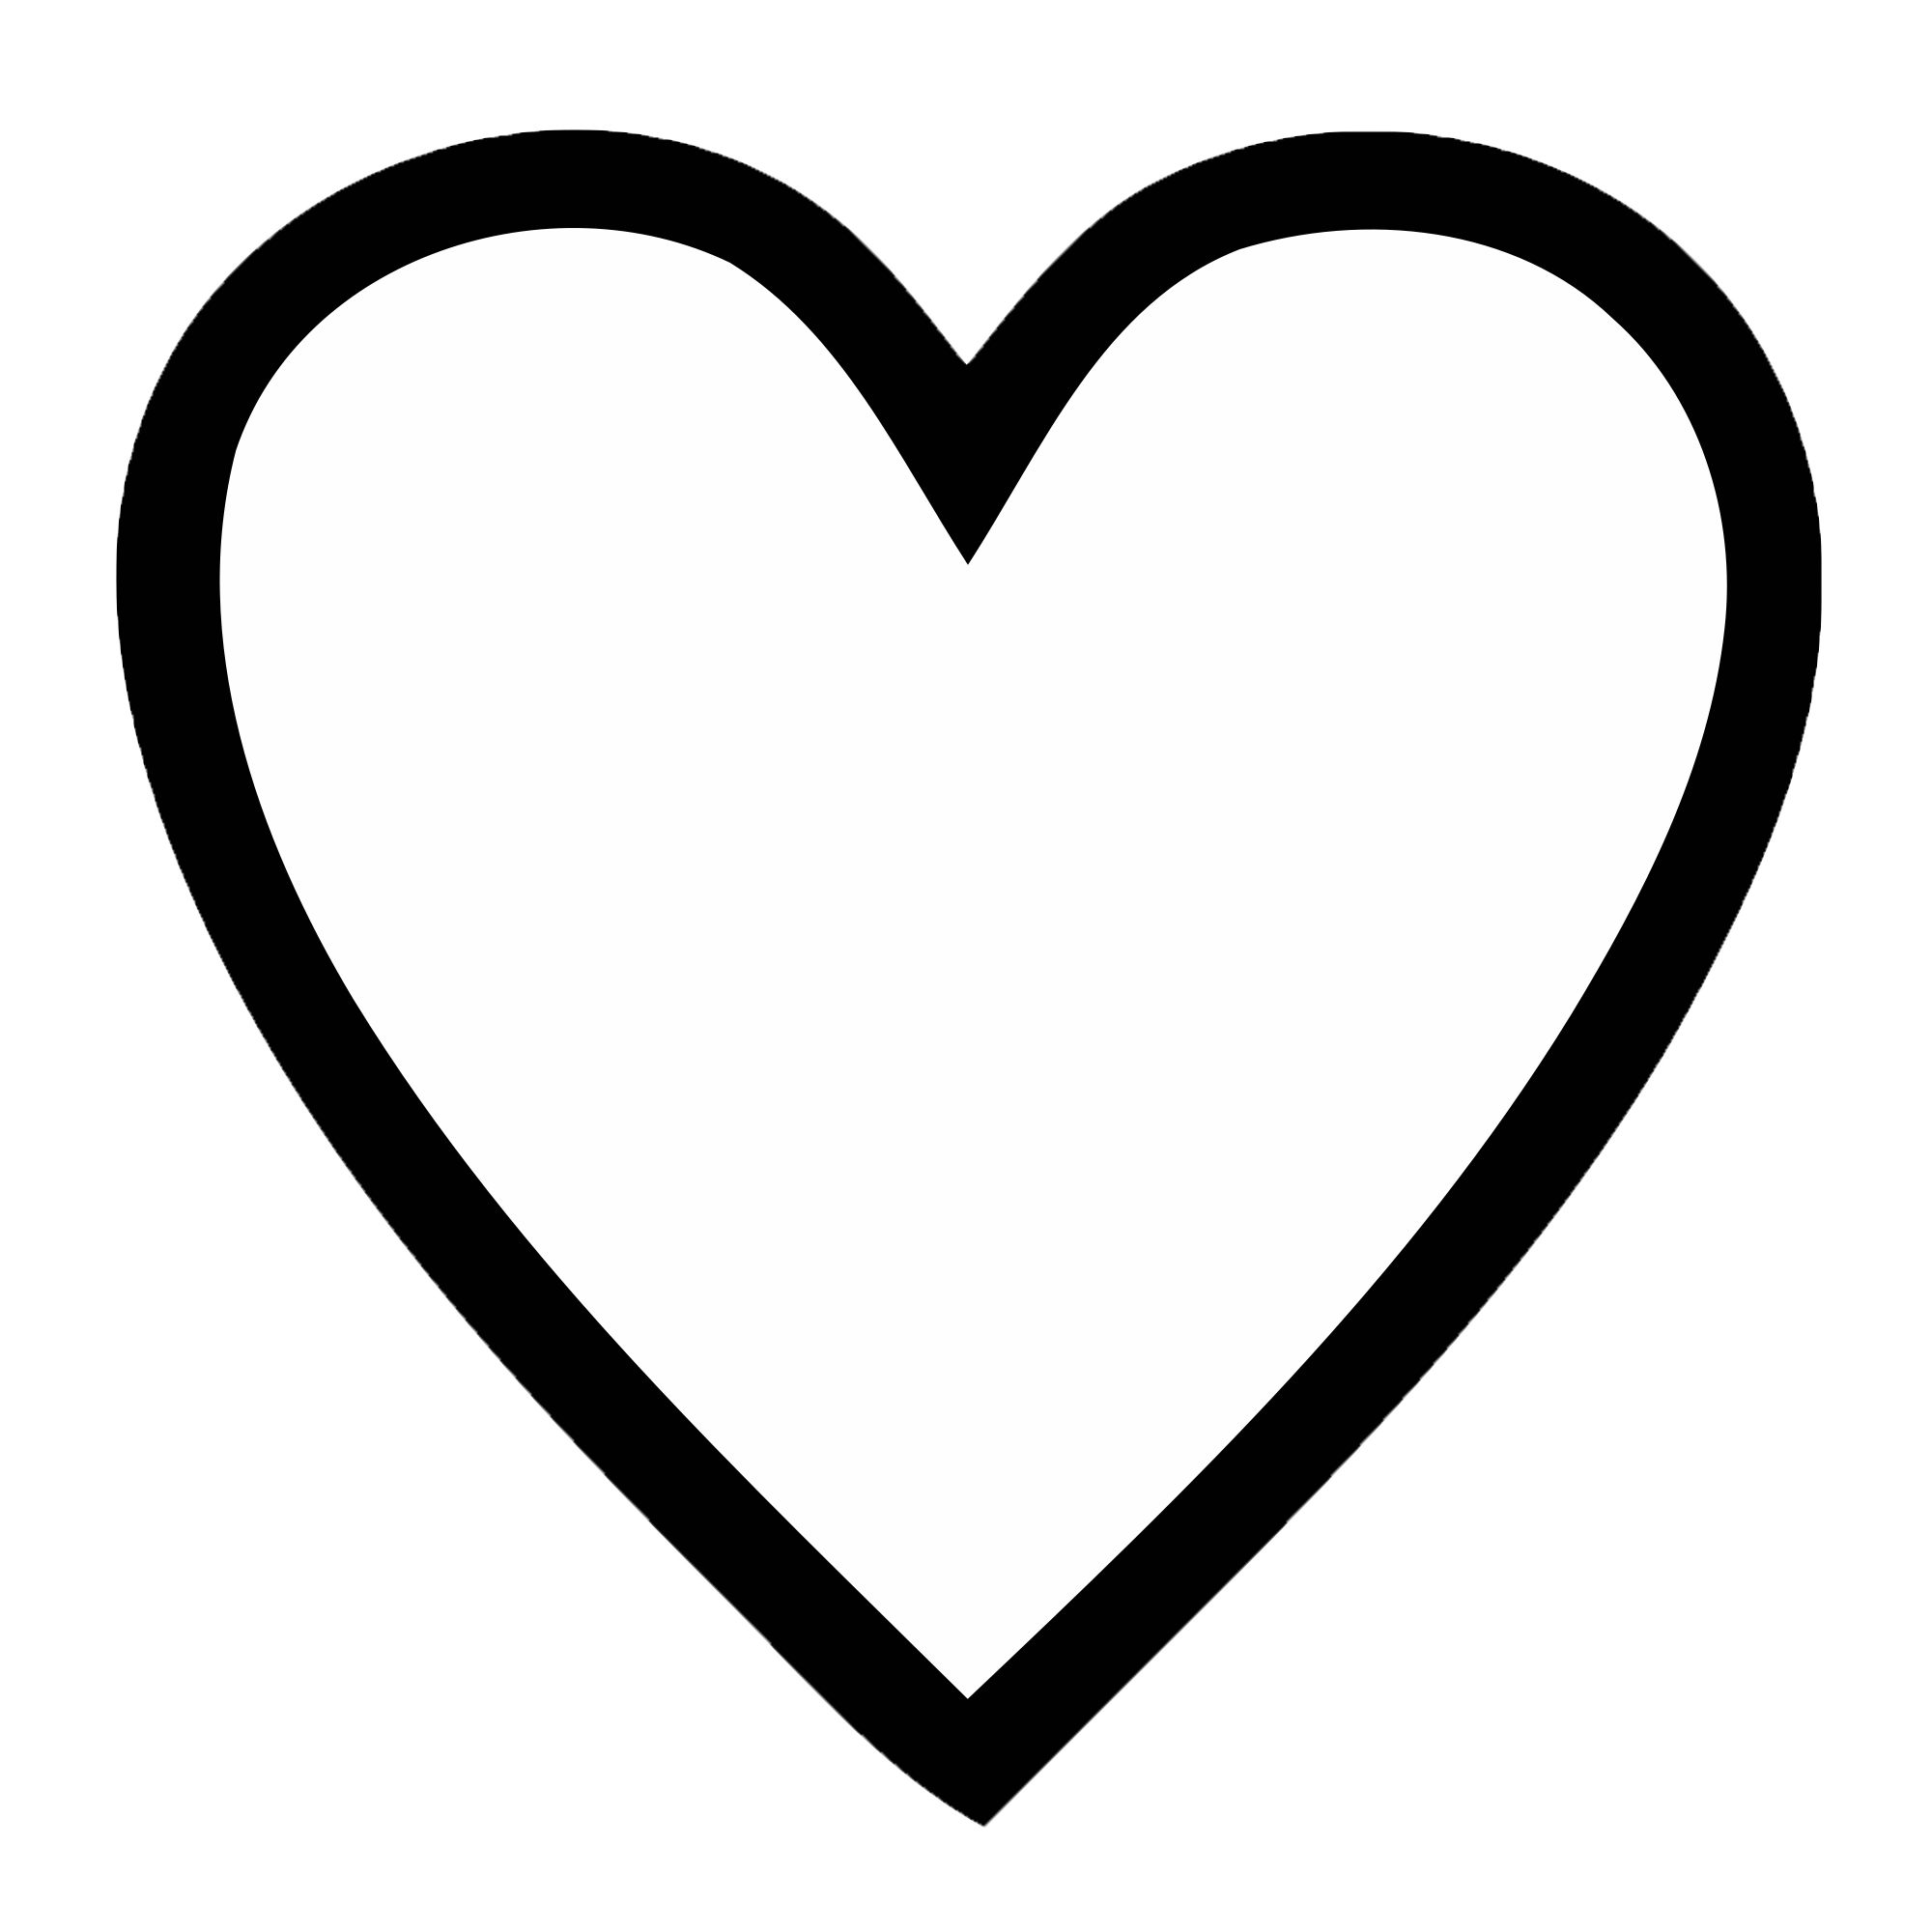 15 white in head icon heart images white heart symbol white transparent heart symbol biocorpaavc Choice Image